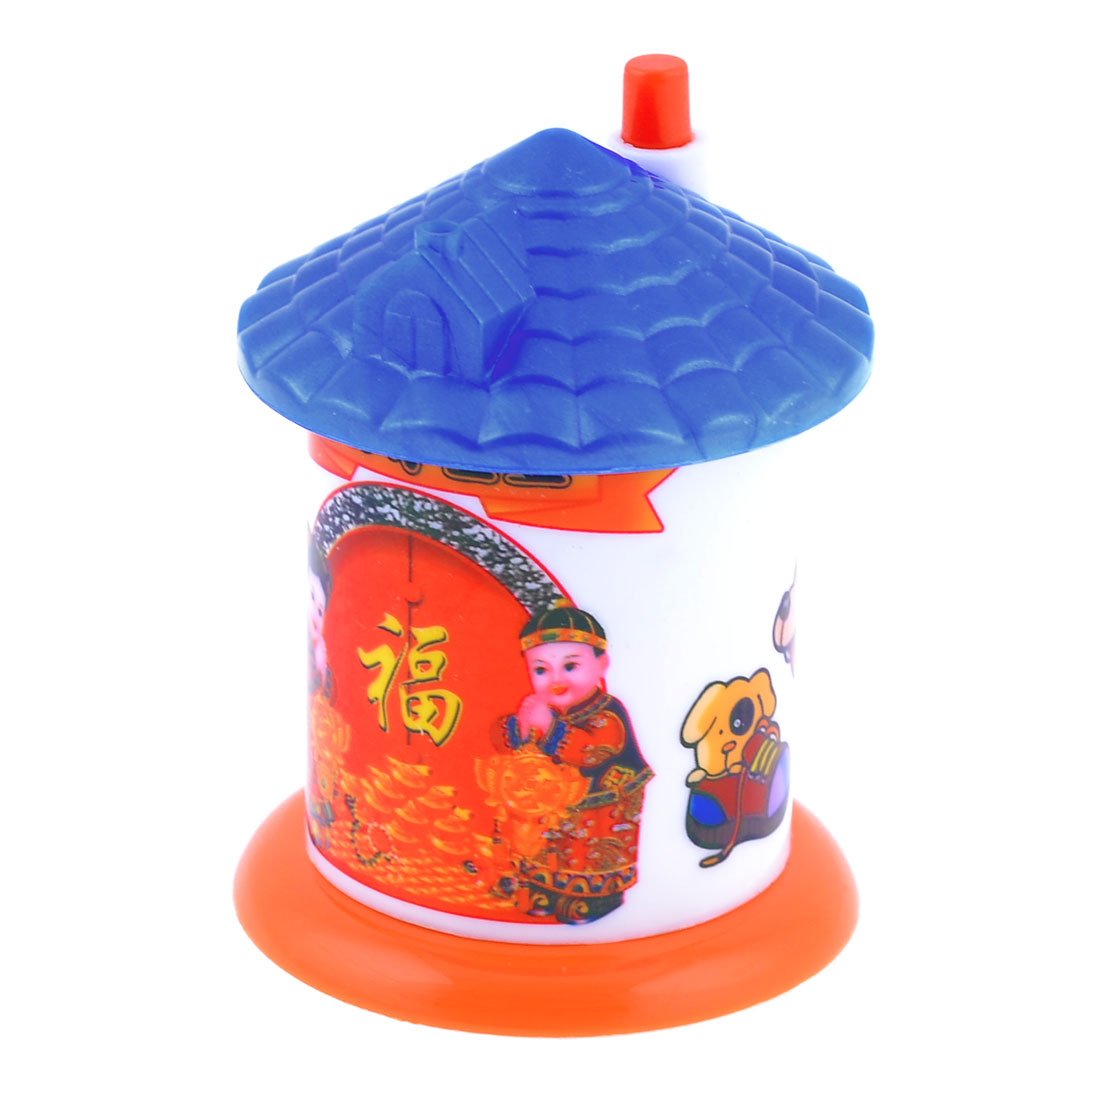 House Designed Shoes Pattern Automatic Toothpick Holder Box Blue Red